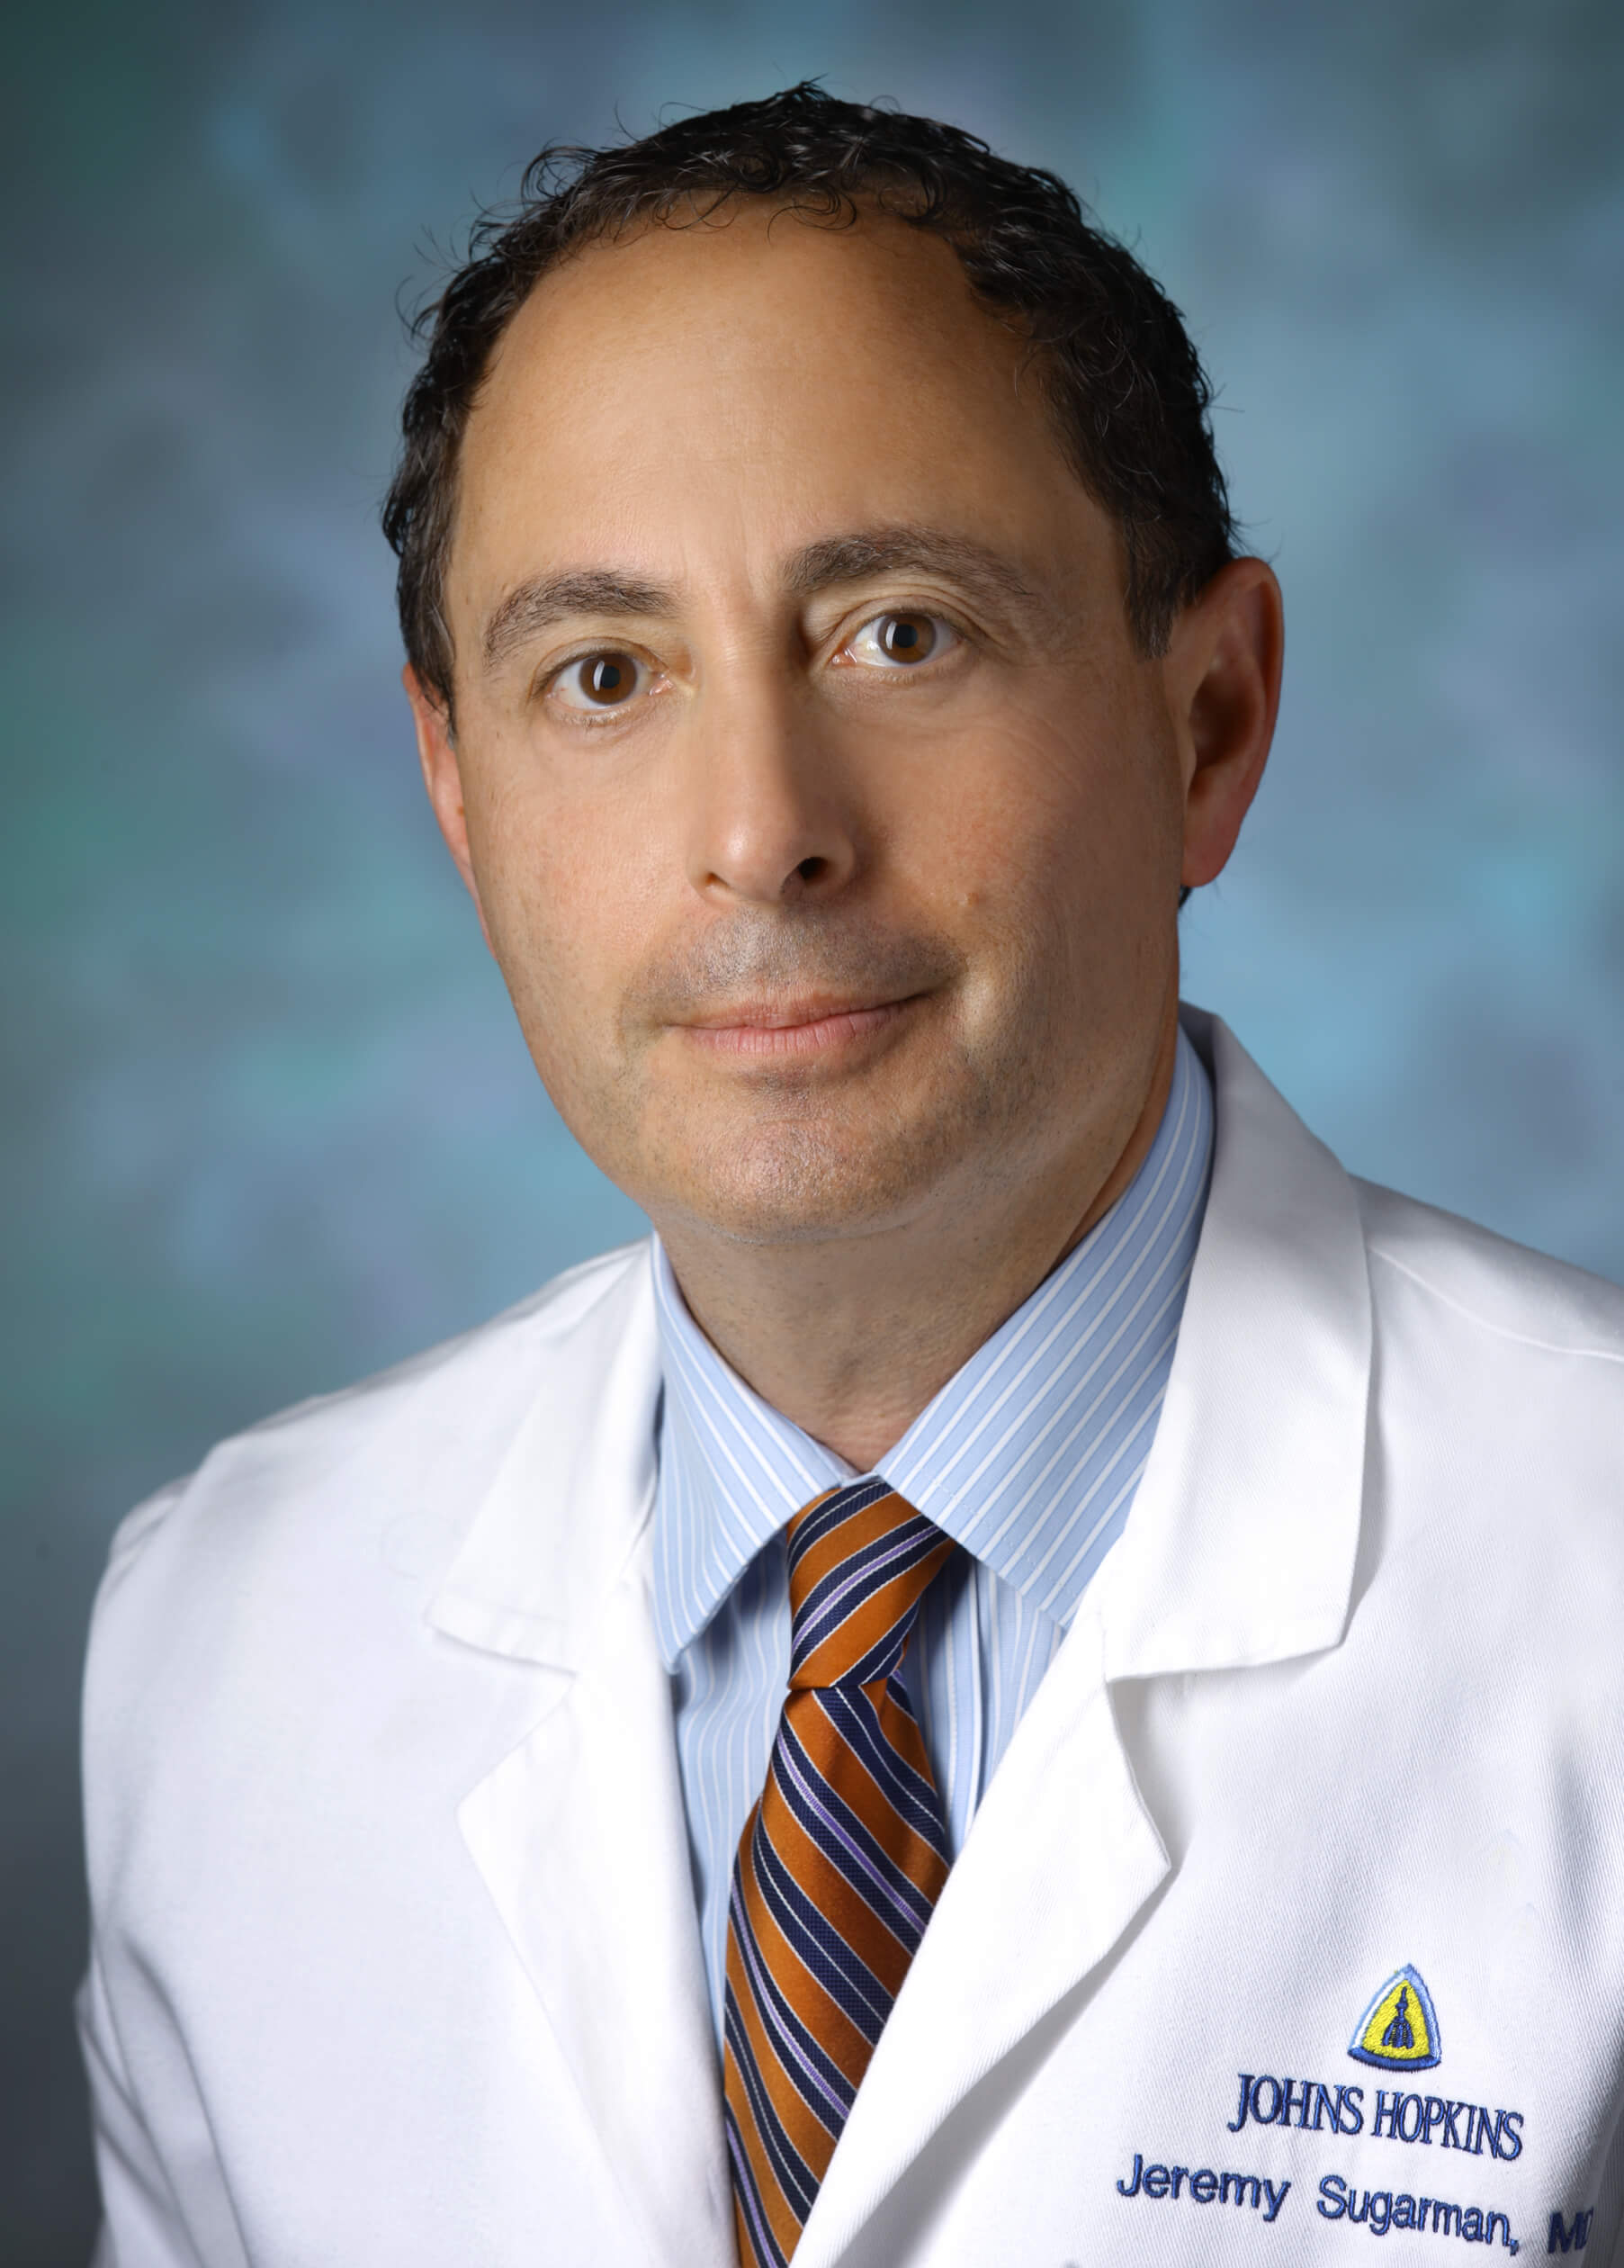 Jeremy Sugarman, MD, MPH, MA